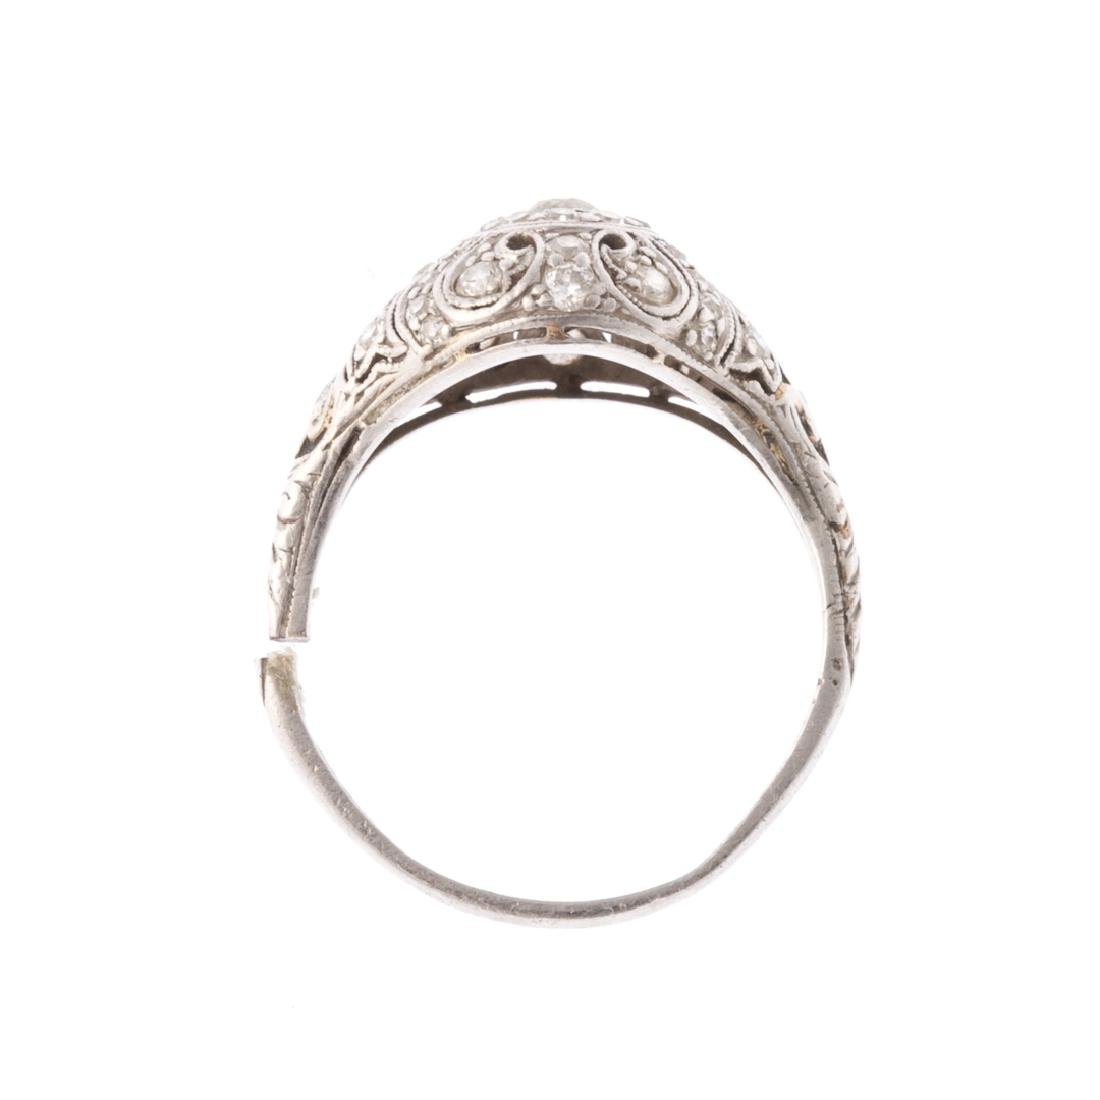 A Lady's Platinum Diamond Filigree Ring - 3